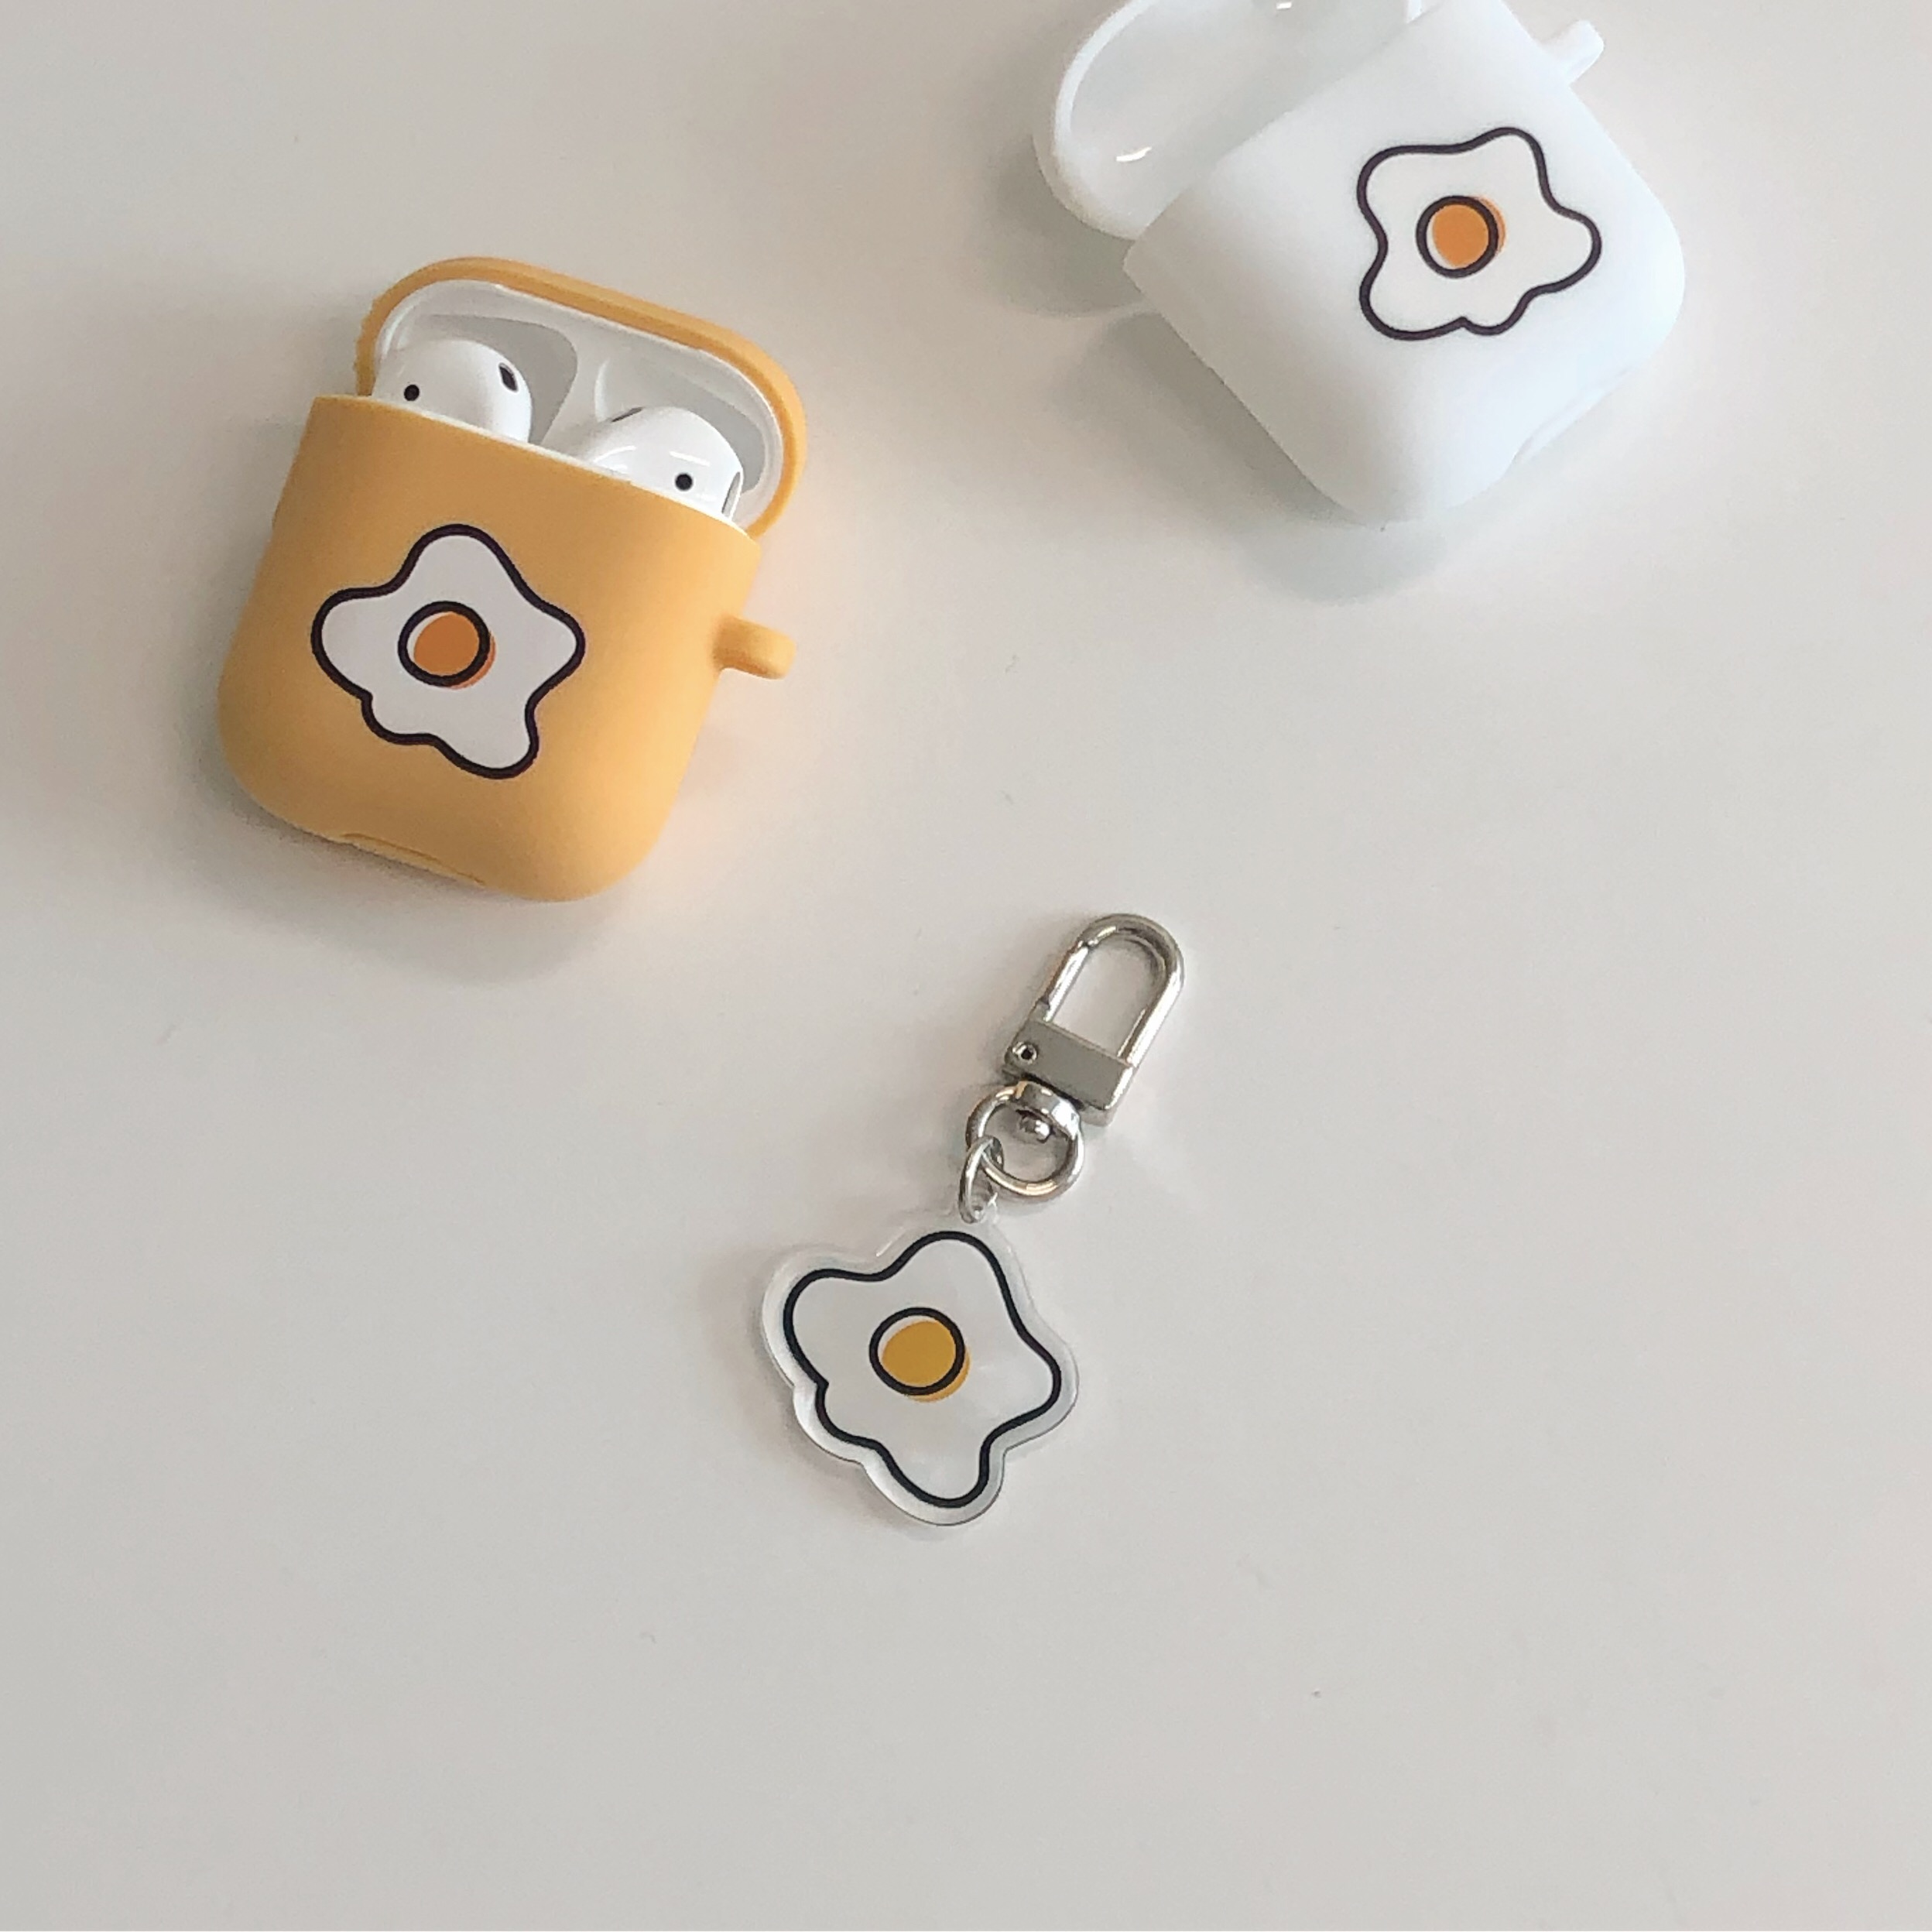 Egg key ring (아크릴)